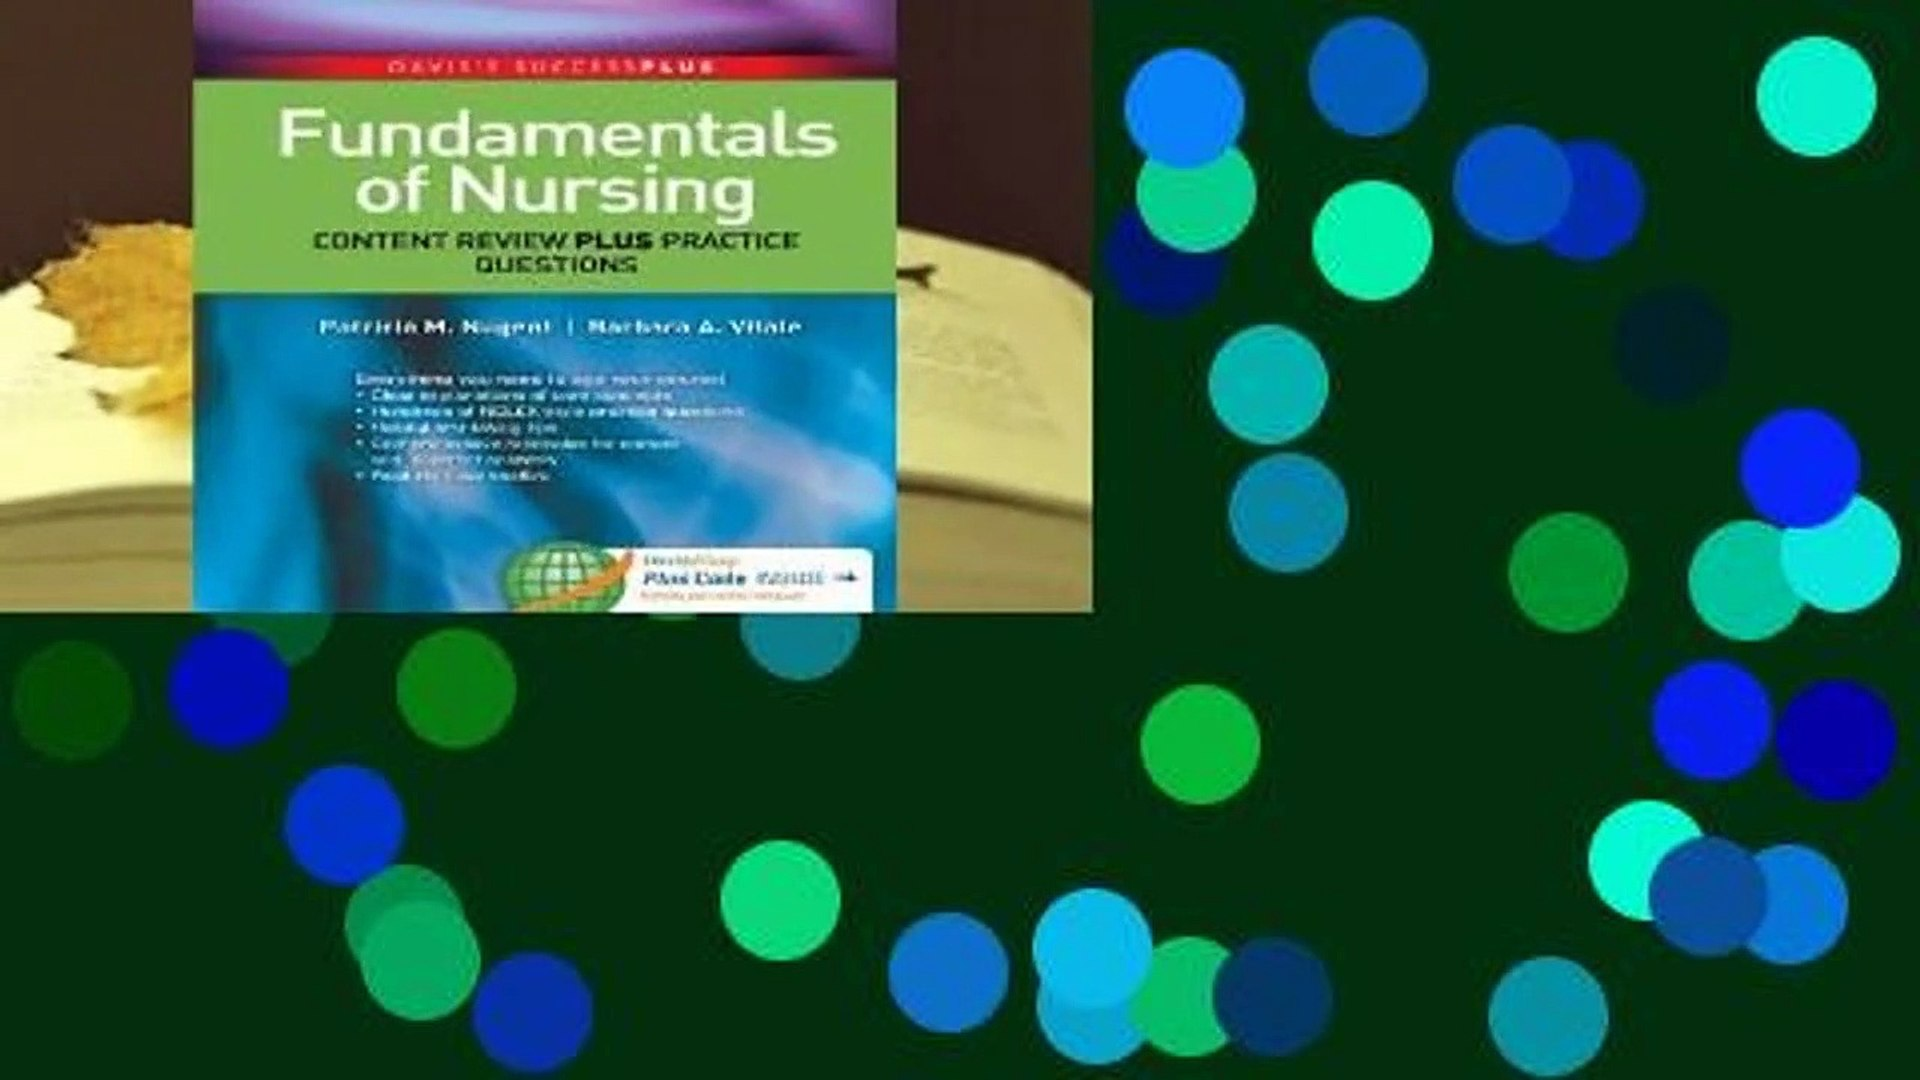 Full E-book Fundamentals of Nursing: Content Review Plus Practice Questions  For Free